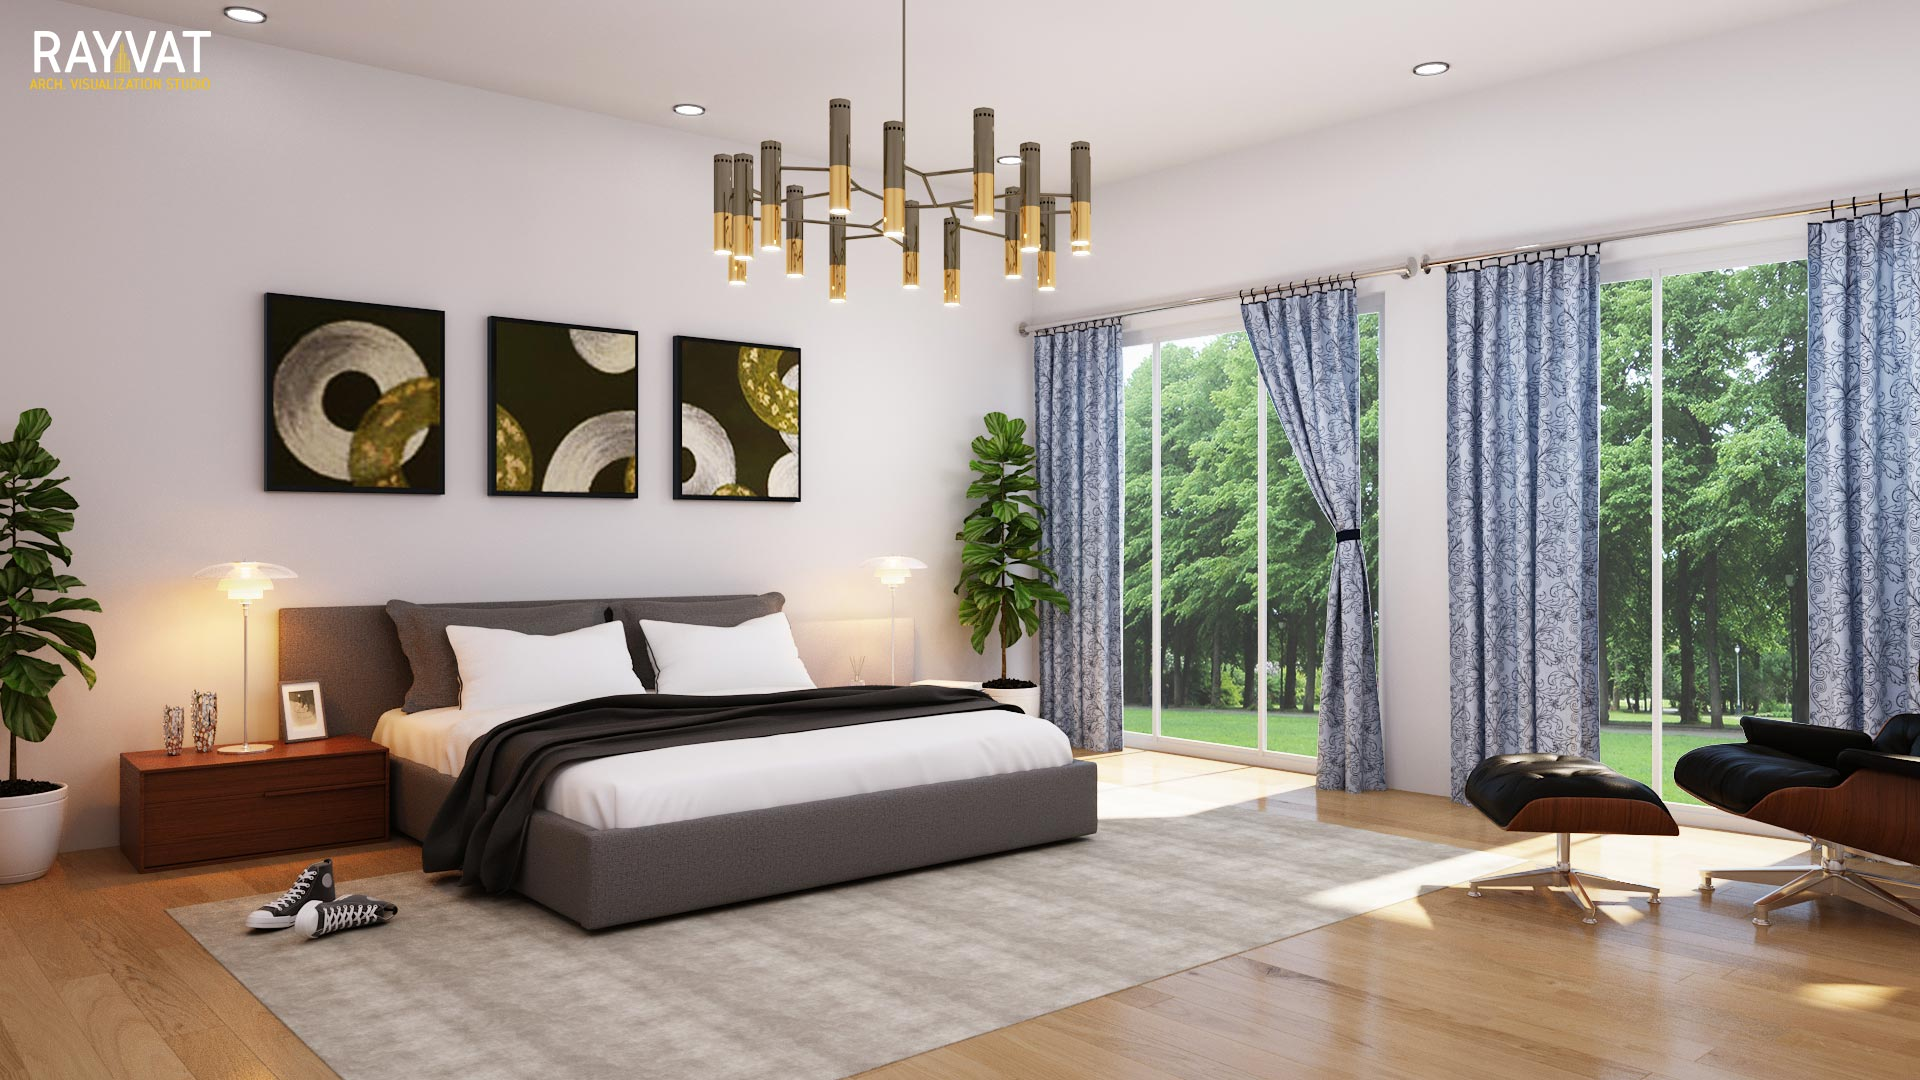 Present the chosen finishes, colours and textures through CGI